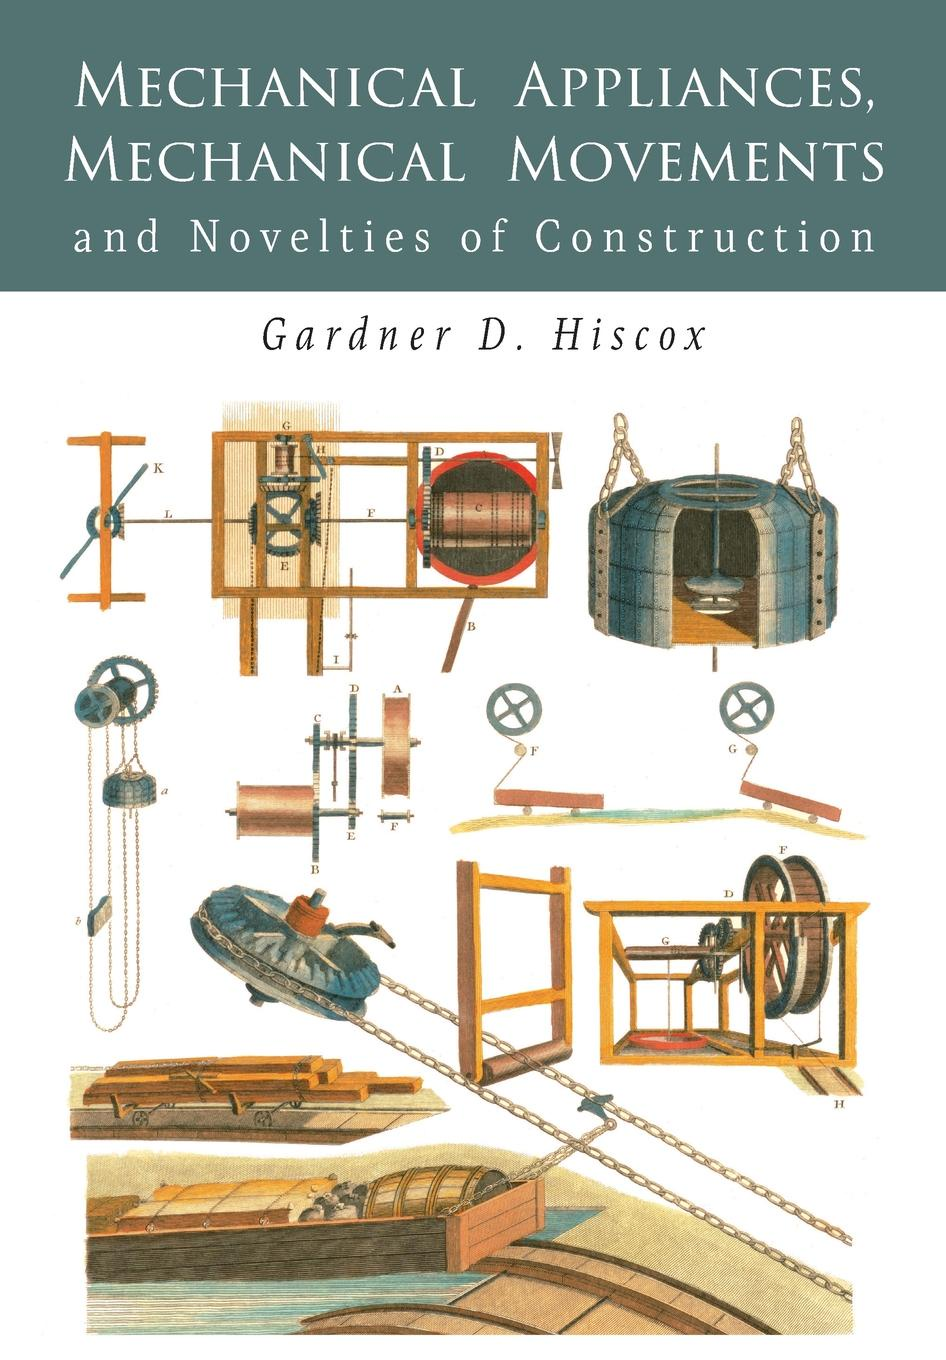 Gardner D. Hiscox Mechanical Appliances, Mechanical Movements and Novelties of Construction